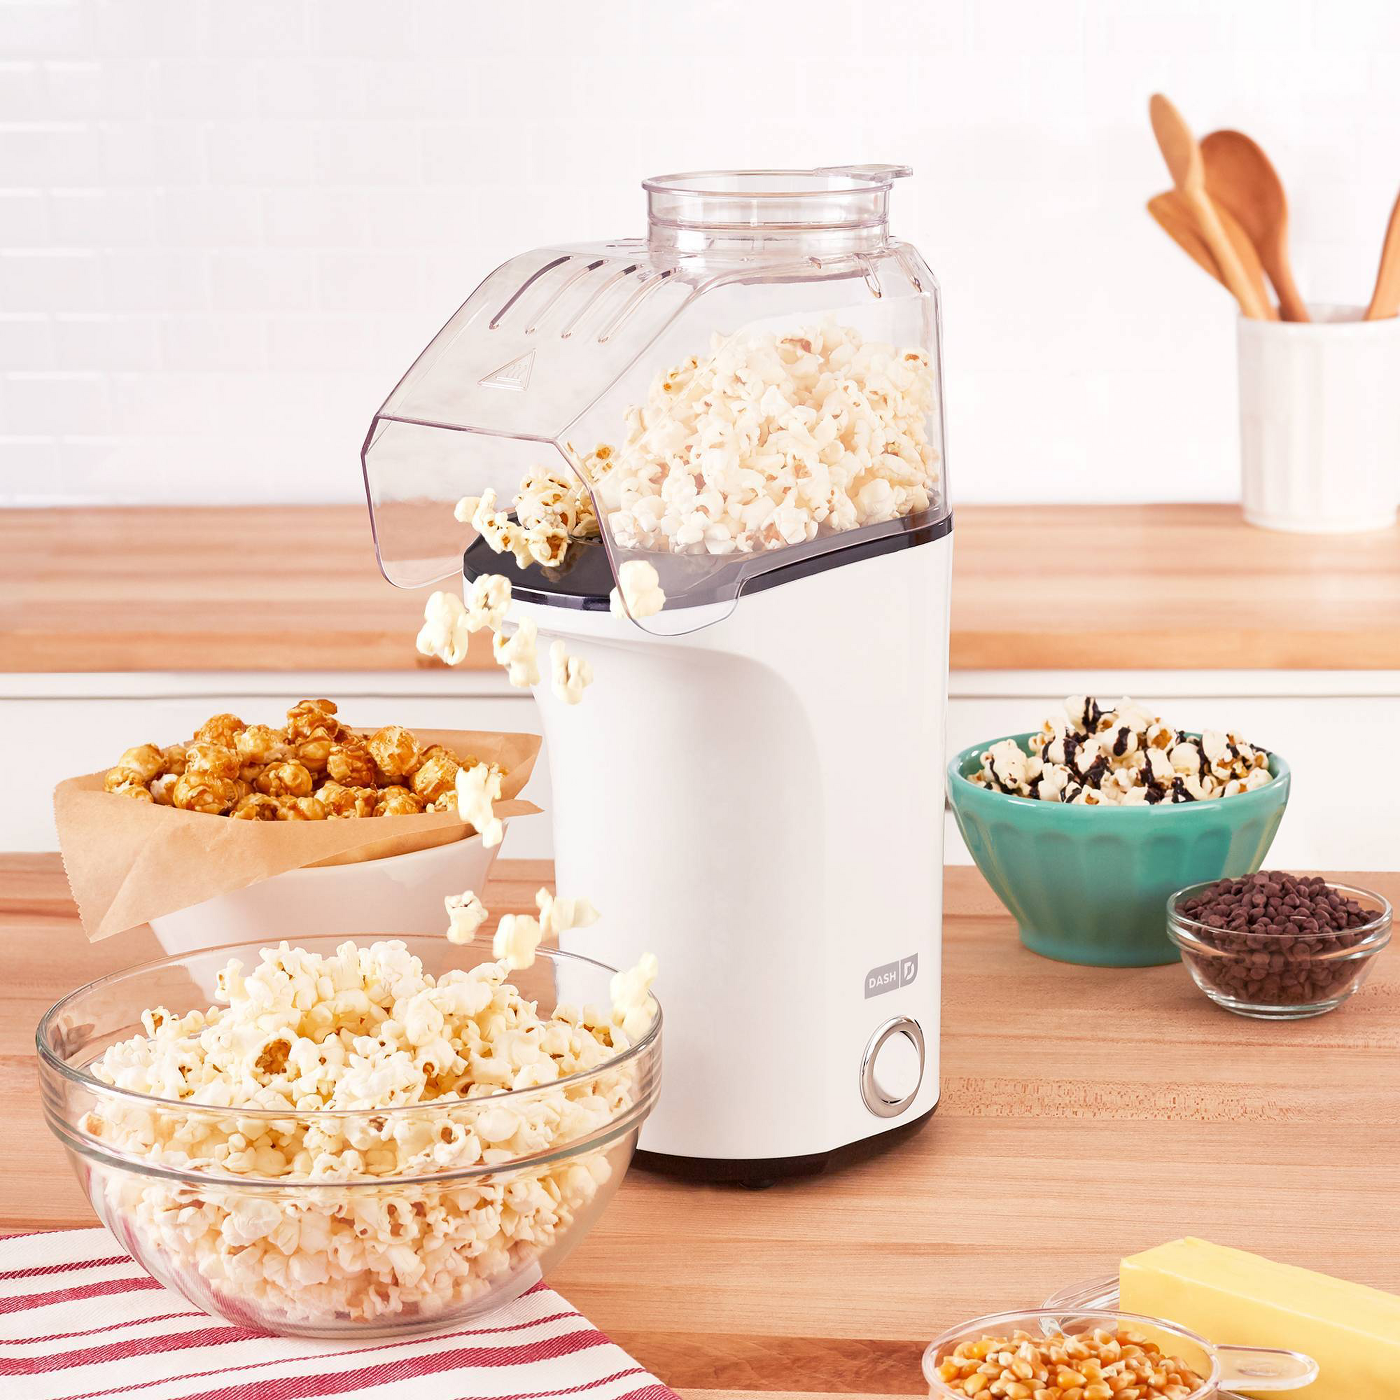 White dash popcorn maker pouring popcorn into a bowl